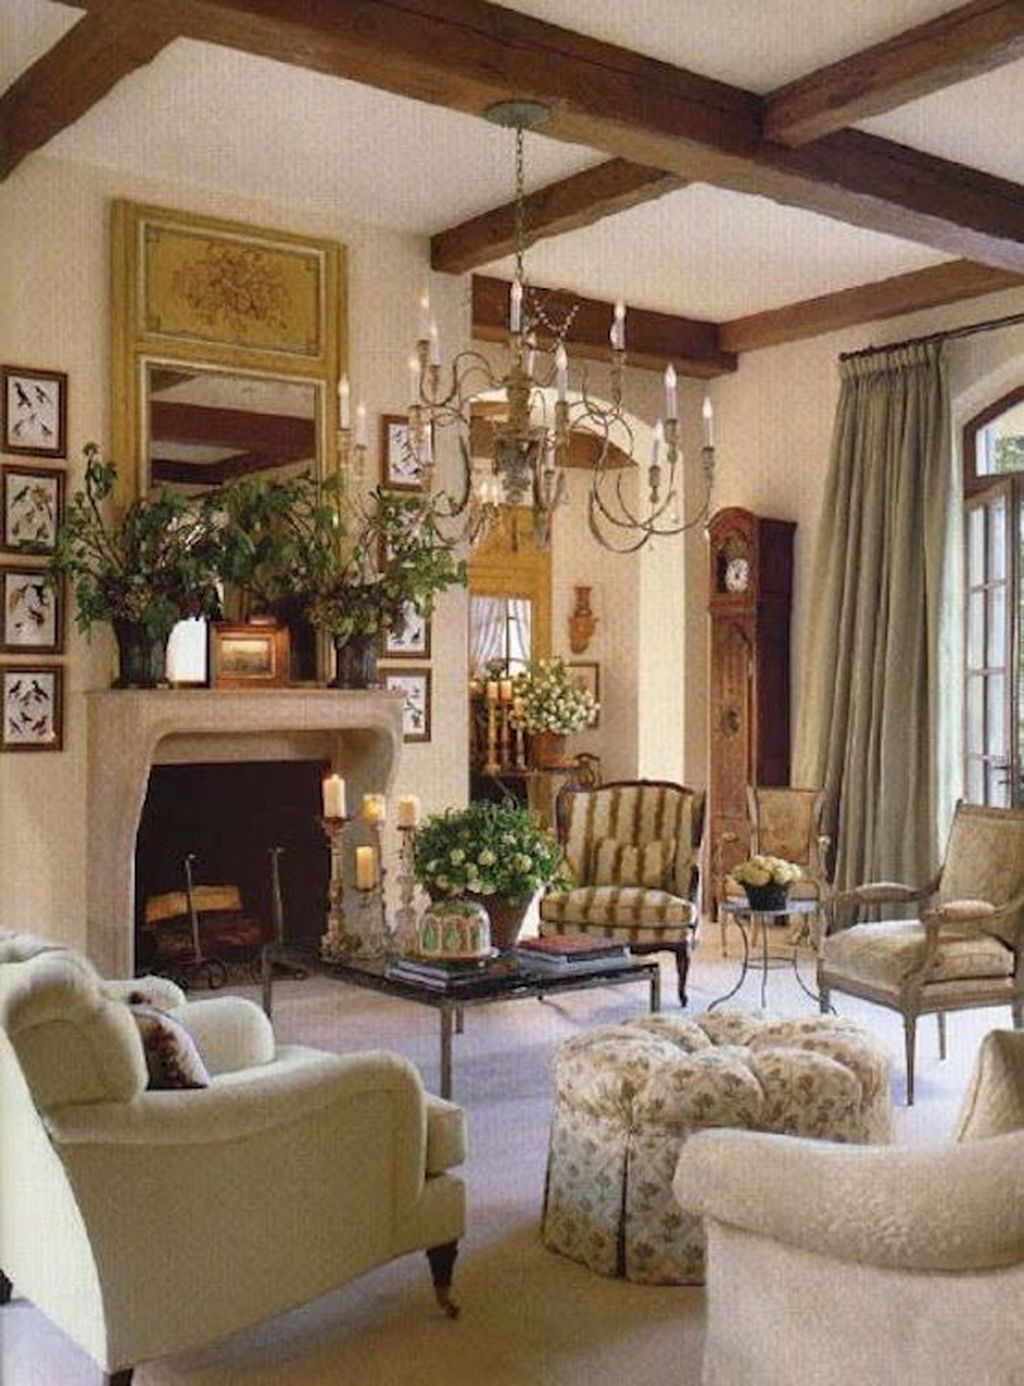 48 Fabulous French Country Living Room Design Ideas Trendehouse French Country Decorating Living Room Country Living Room Design French Country Living Room